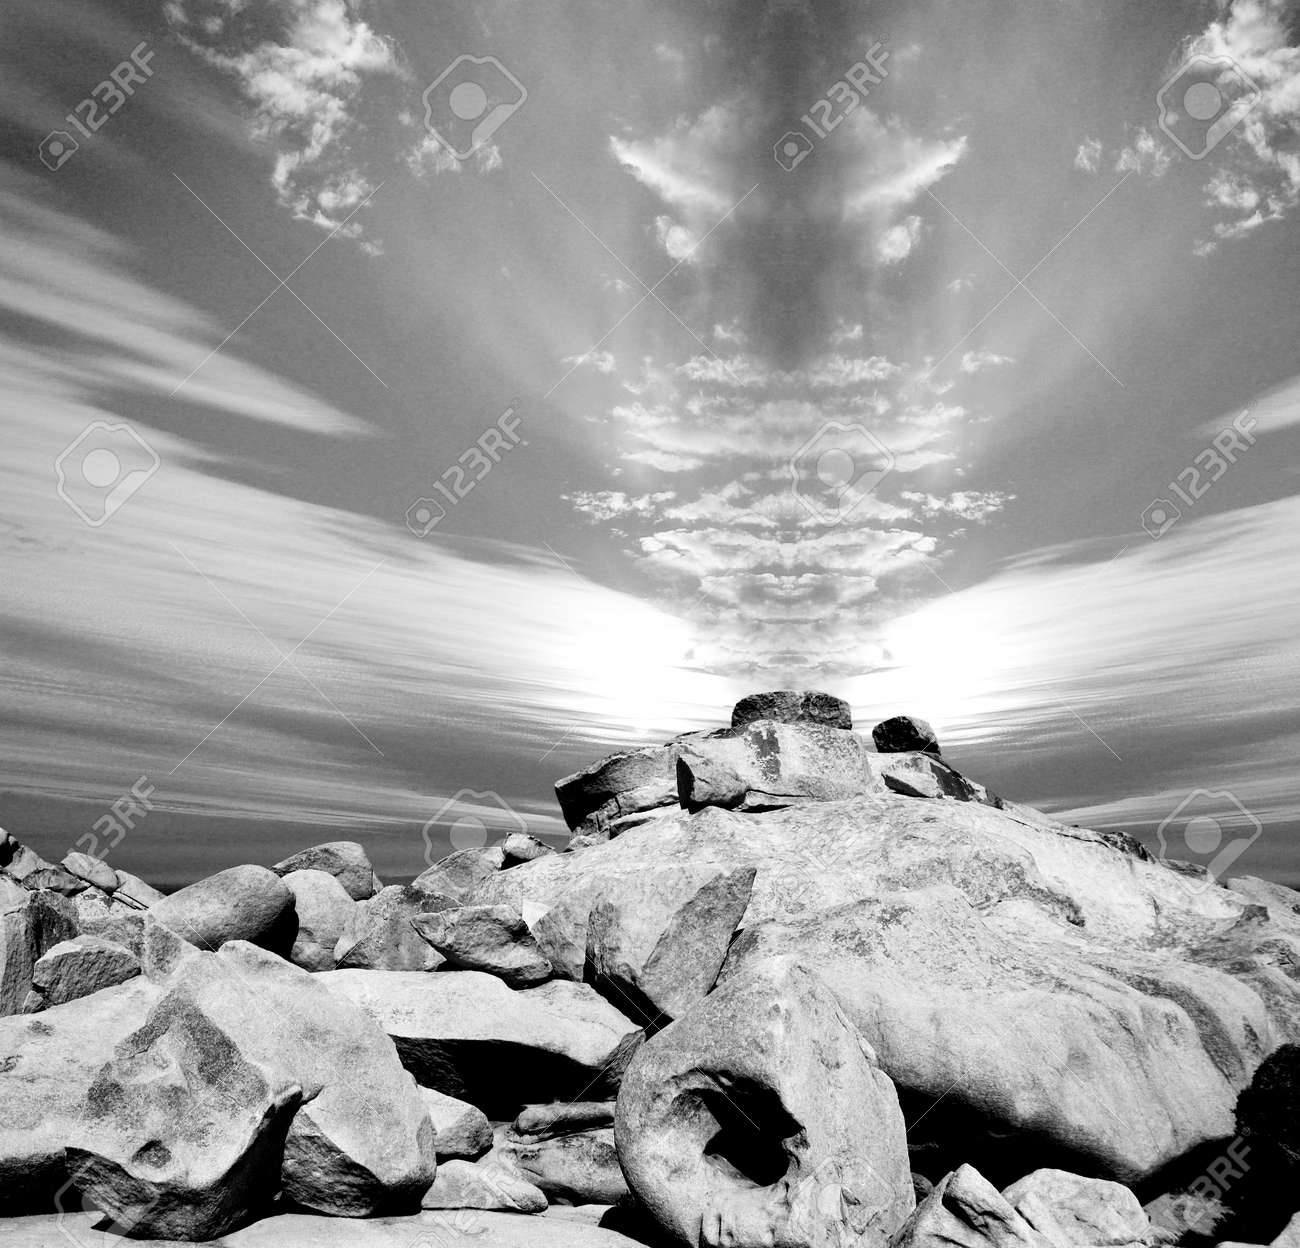 Composite image of rays of sun, clouds and rocky formation Stock Photo - 4021178